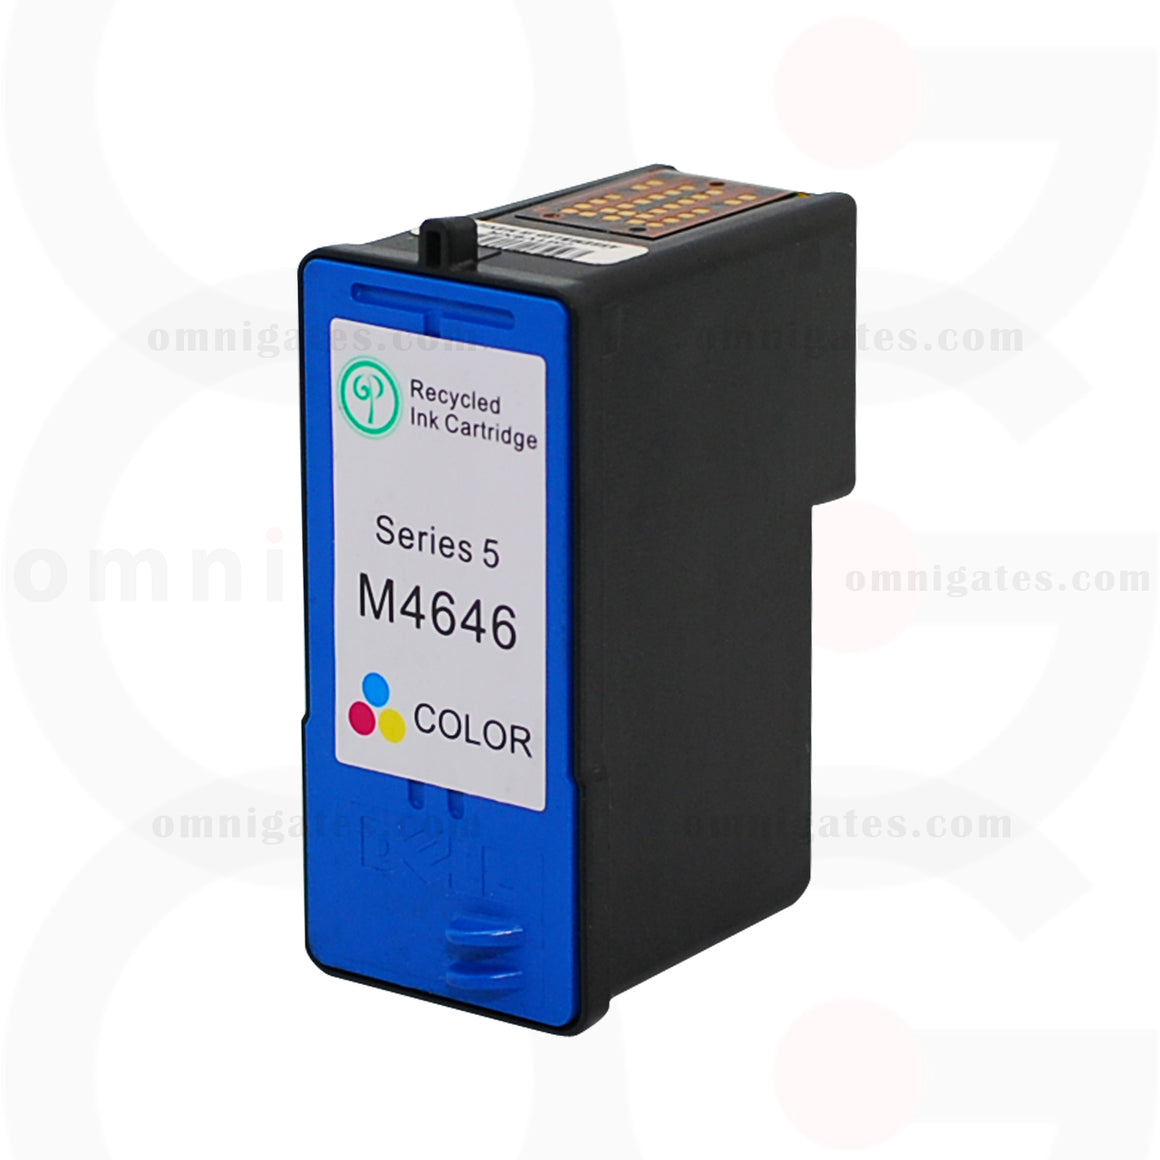 Color OGP Remanufactured Dell M4646 Inkjet Cartridge